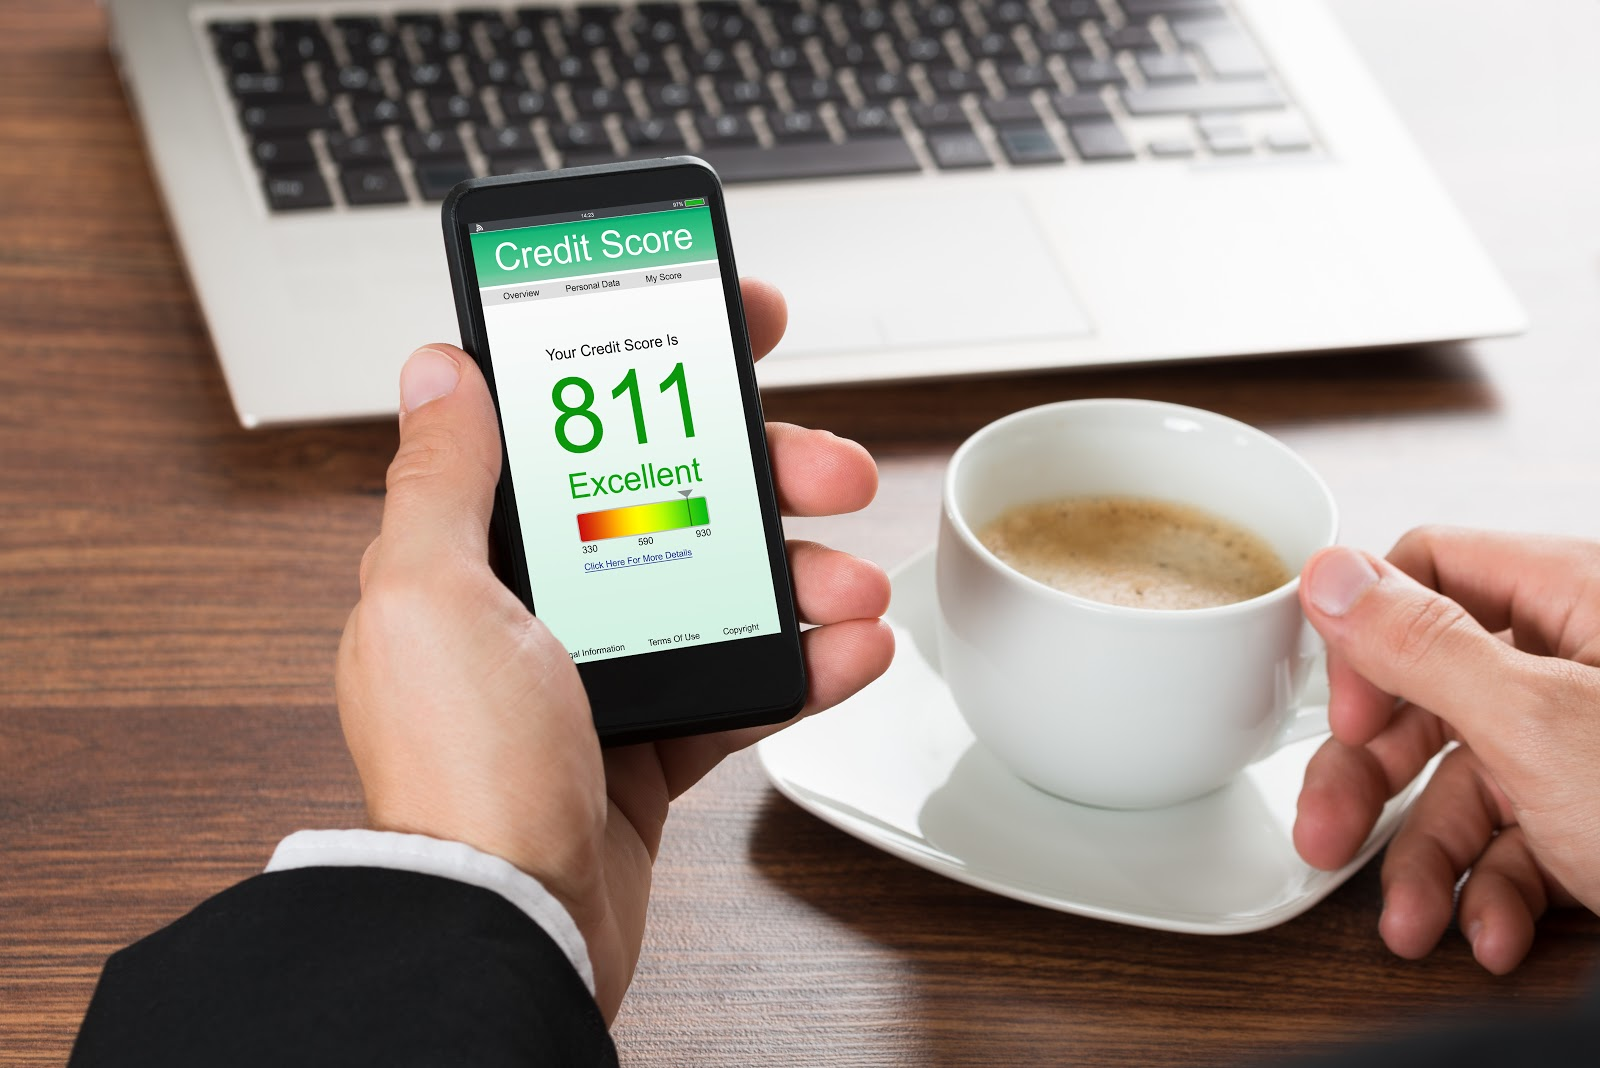 Close-up of a phone displaying a credit score